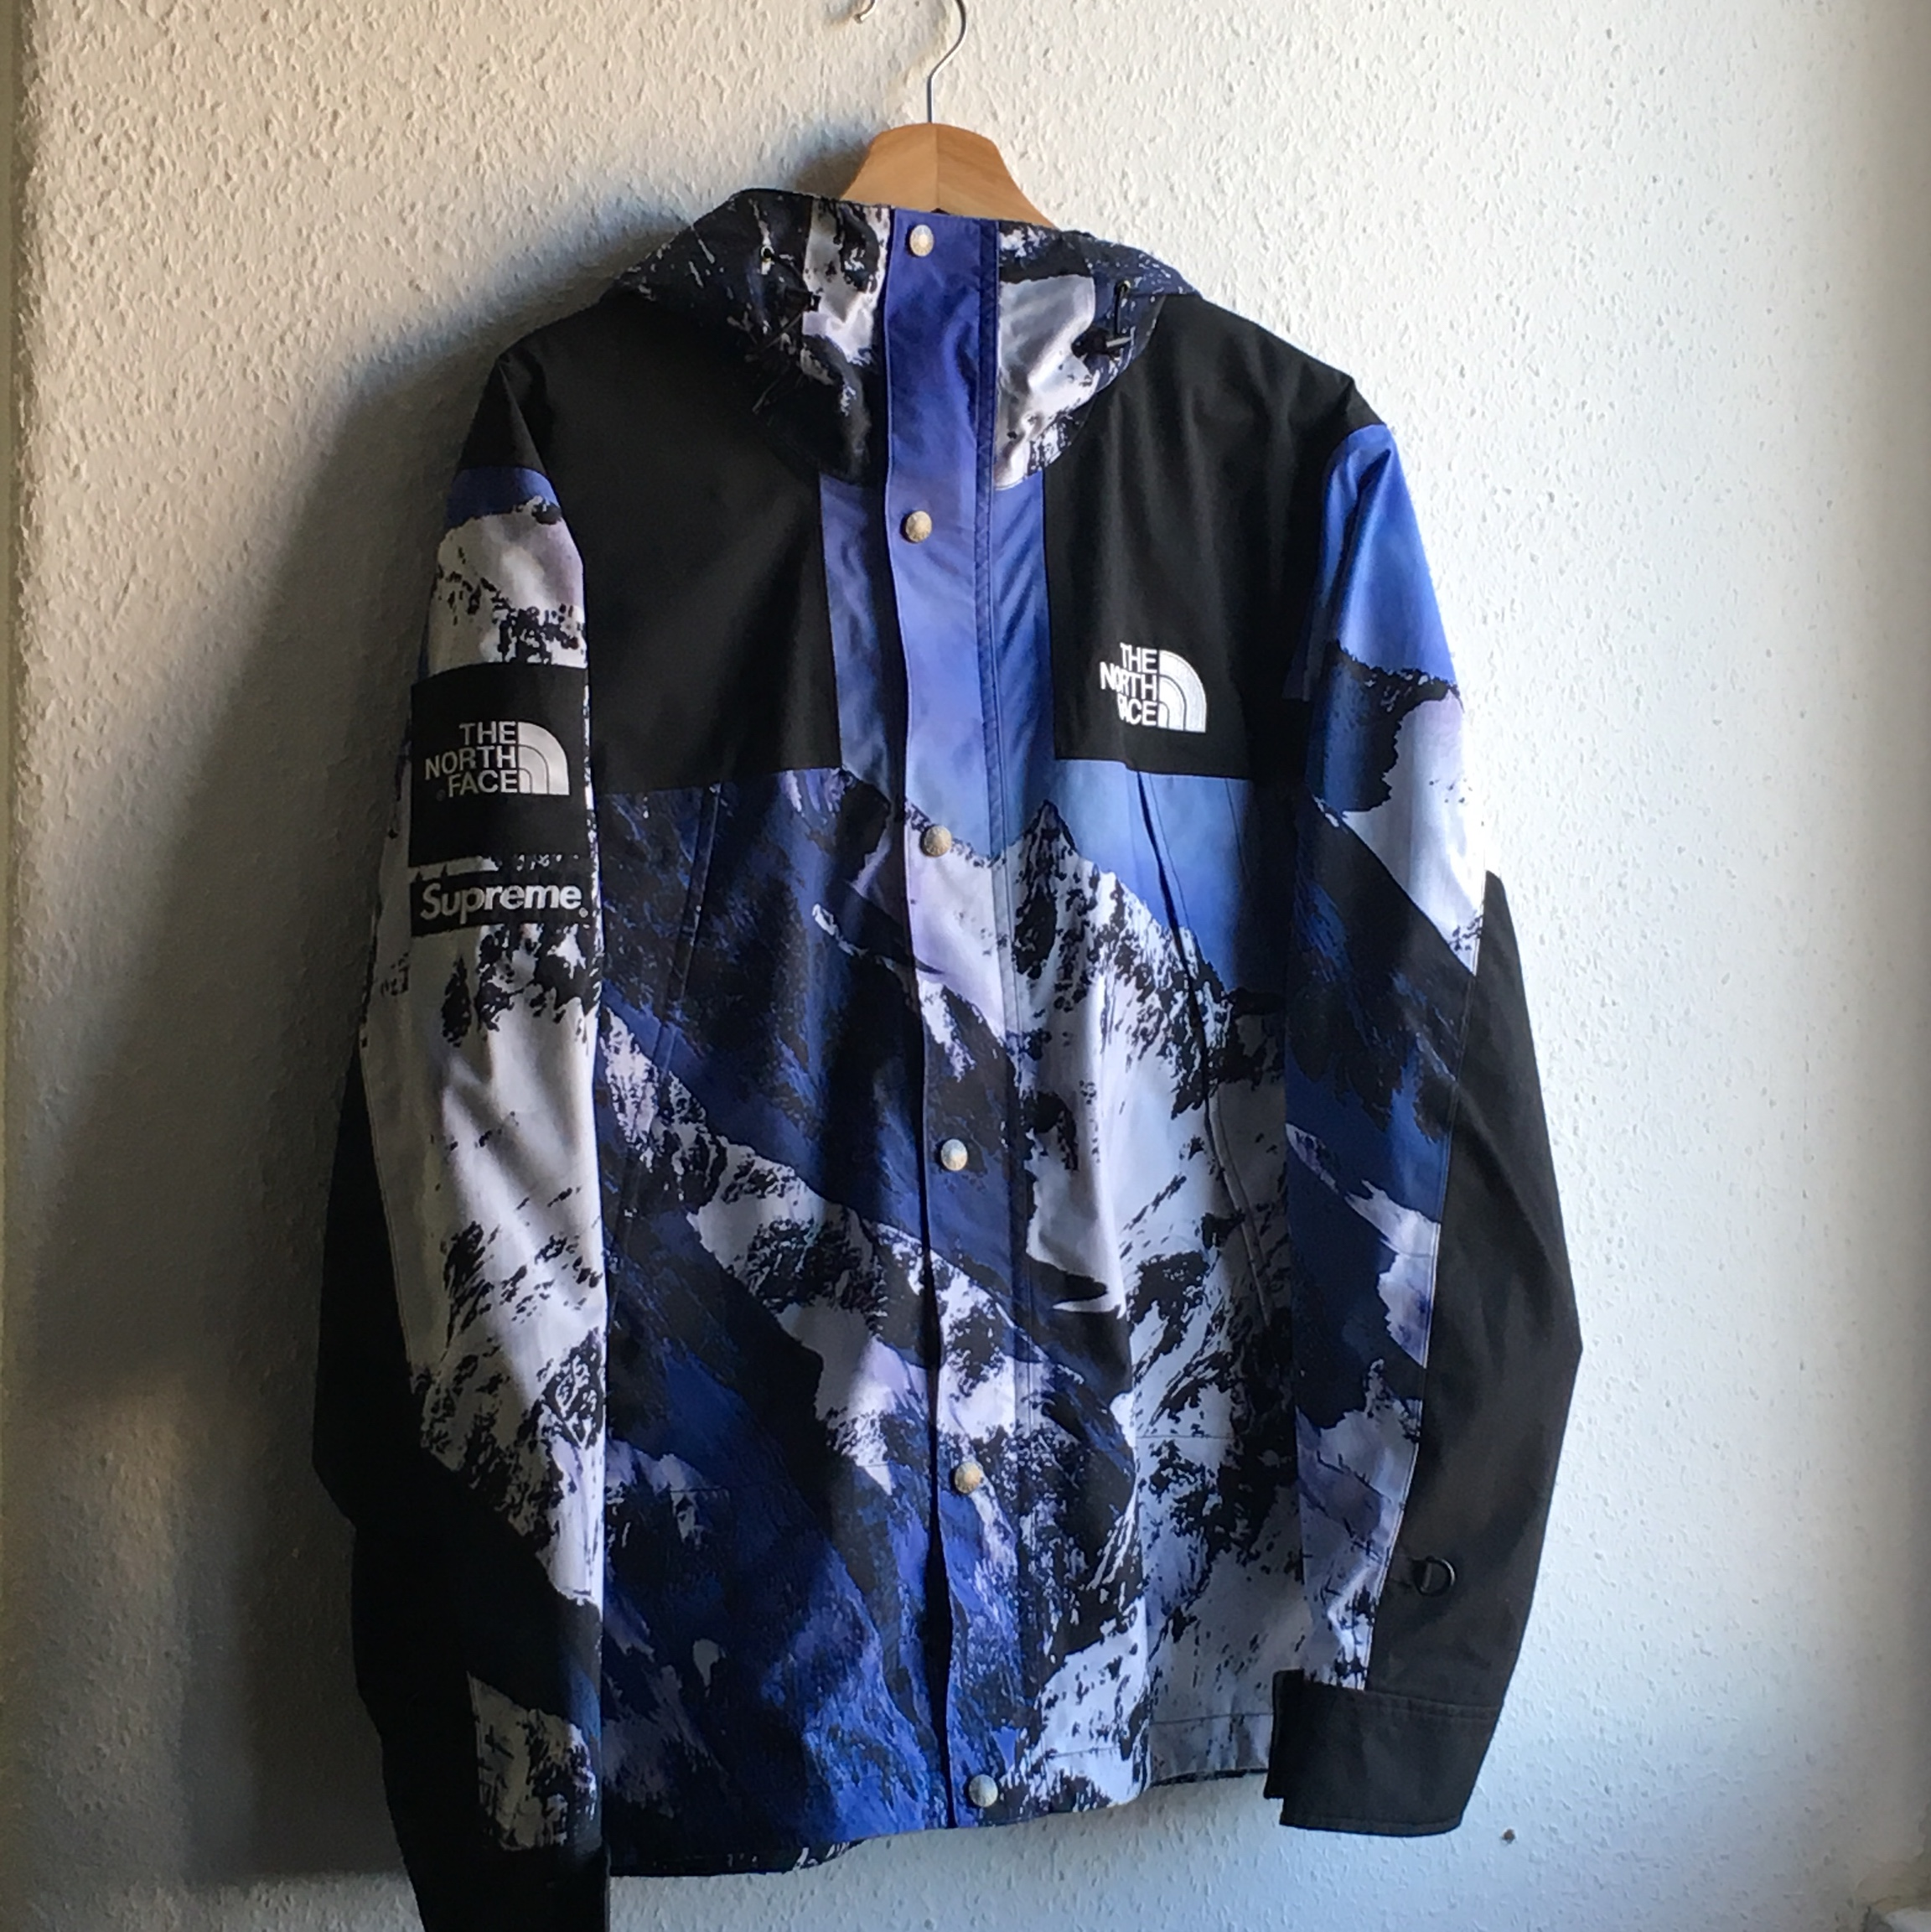 FW17 TNF The North Face x Supreme Mountain Parka Jacke mit Montain Print